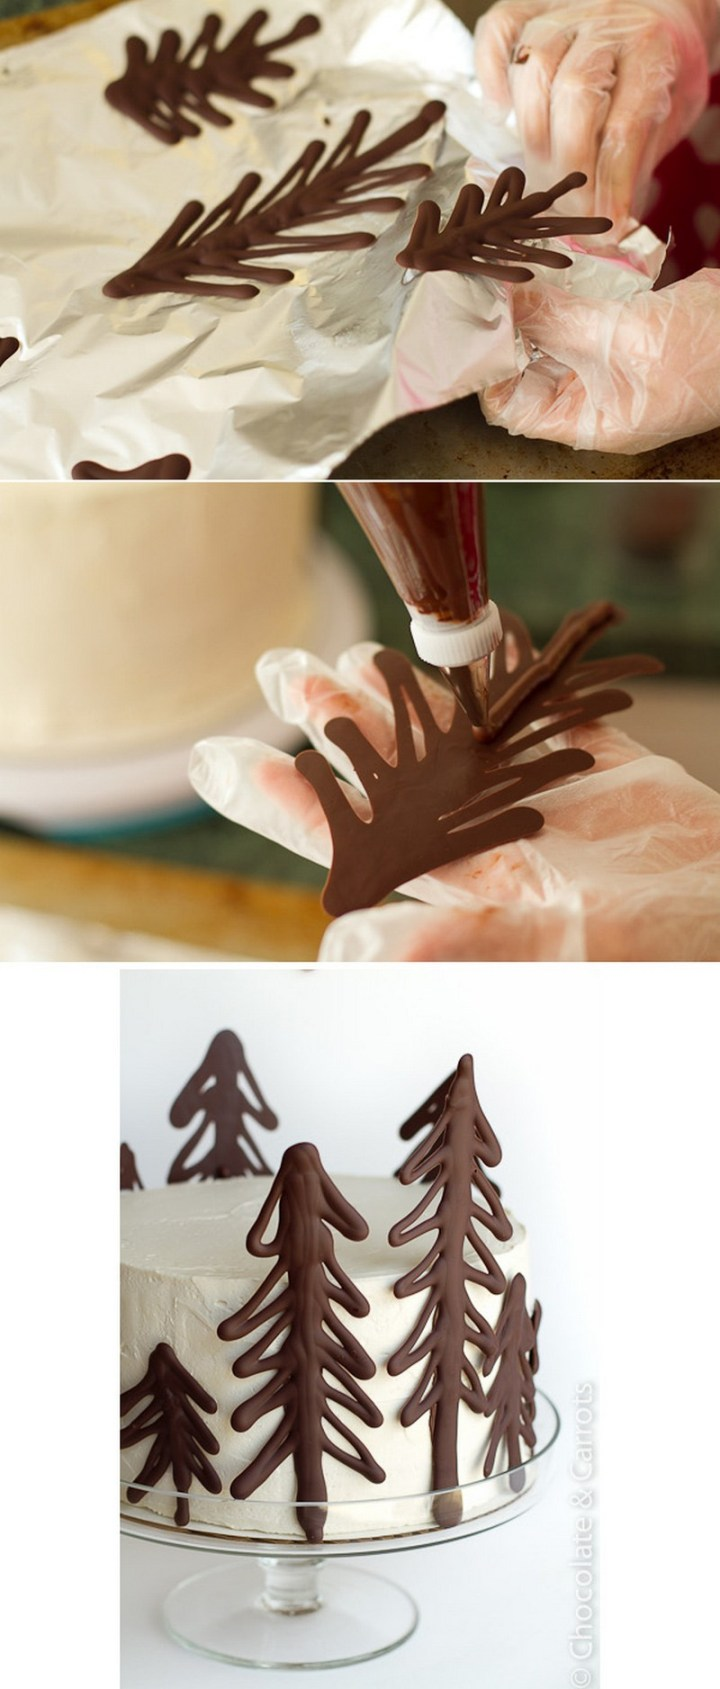 Draw Christmas trees on parchment paper using melted chocolate